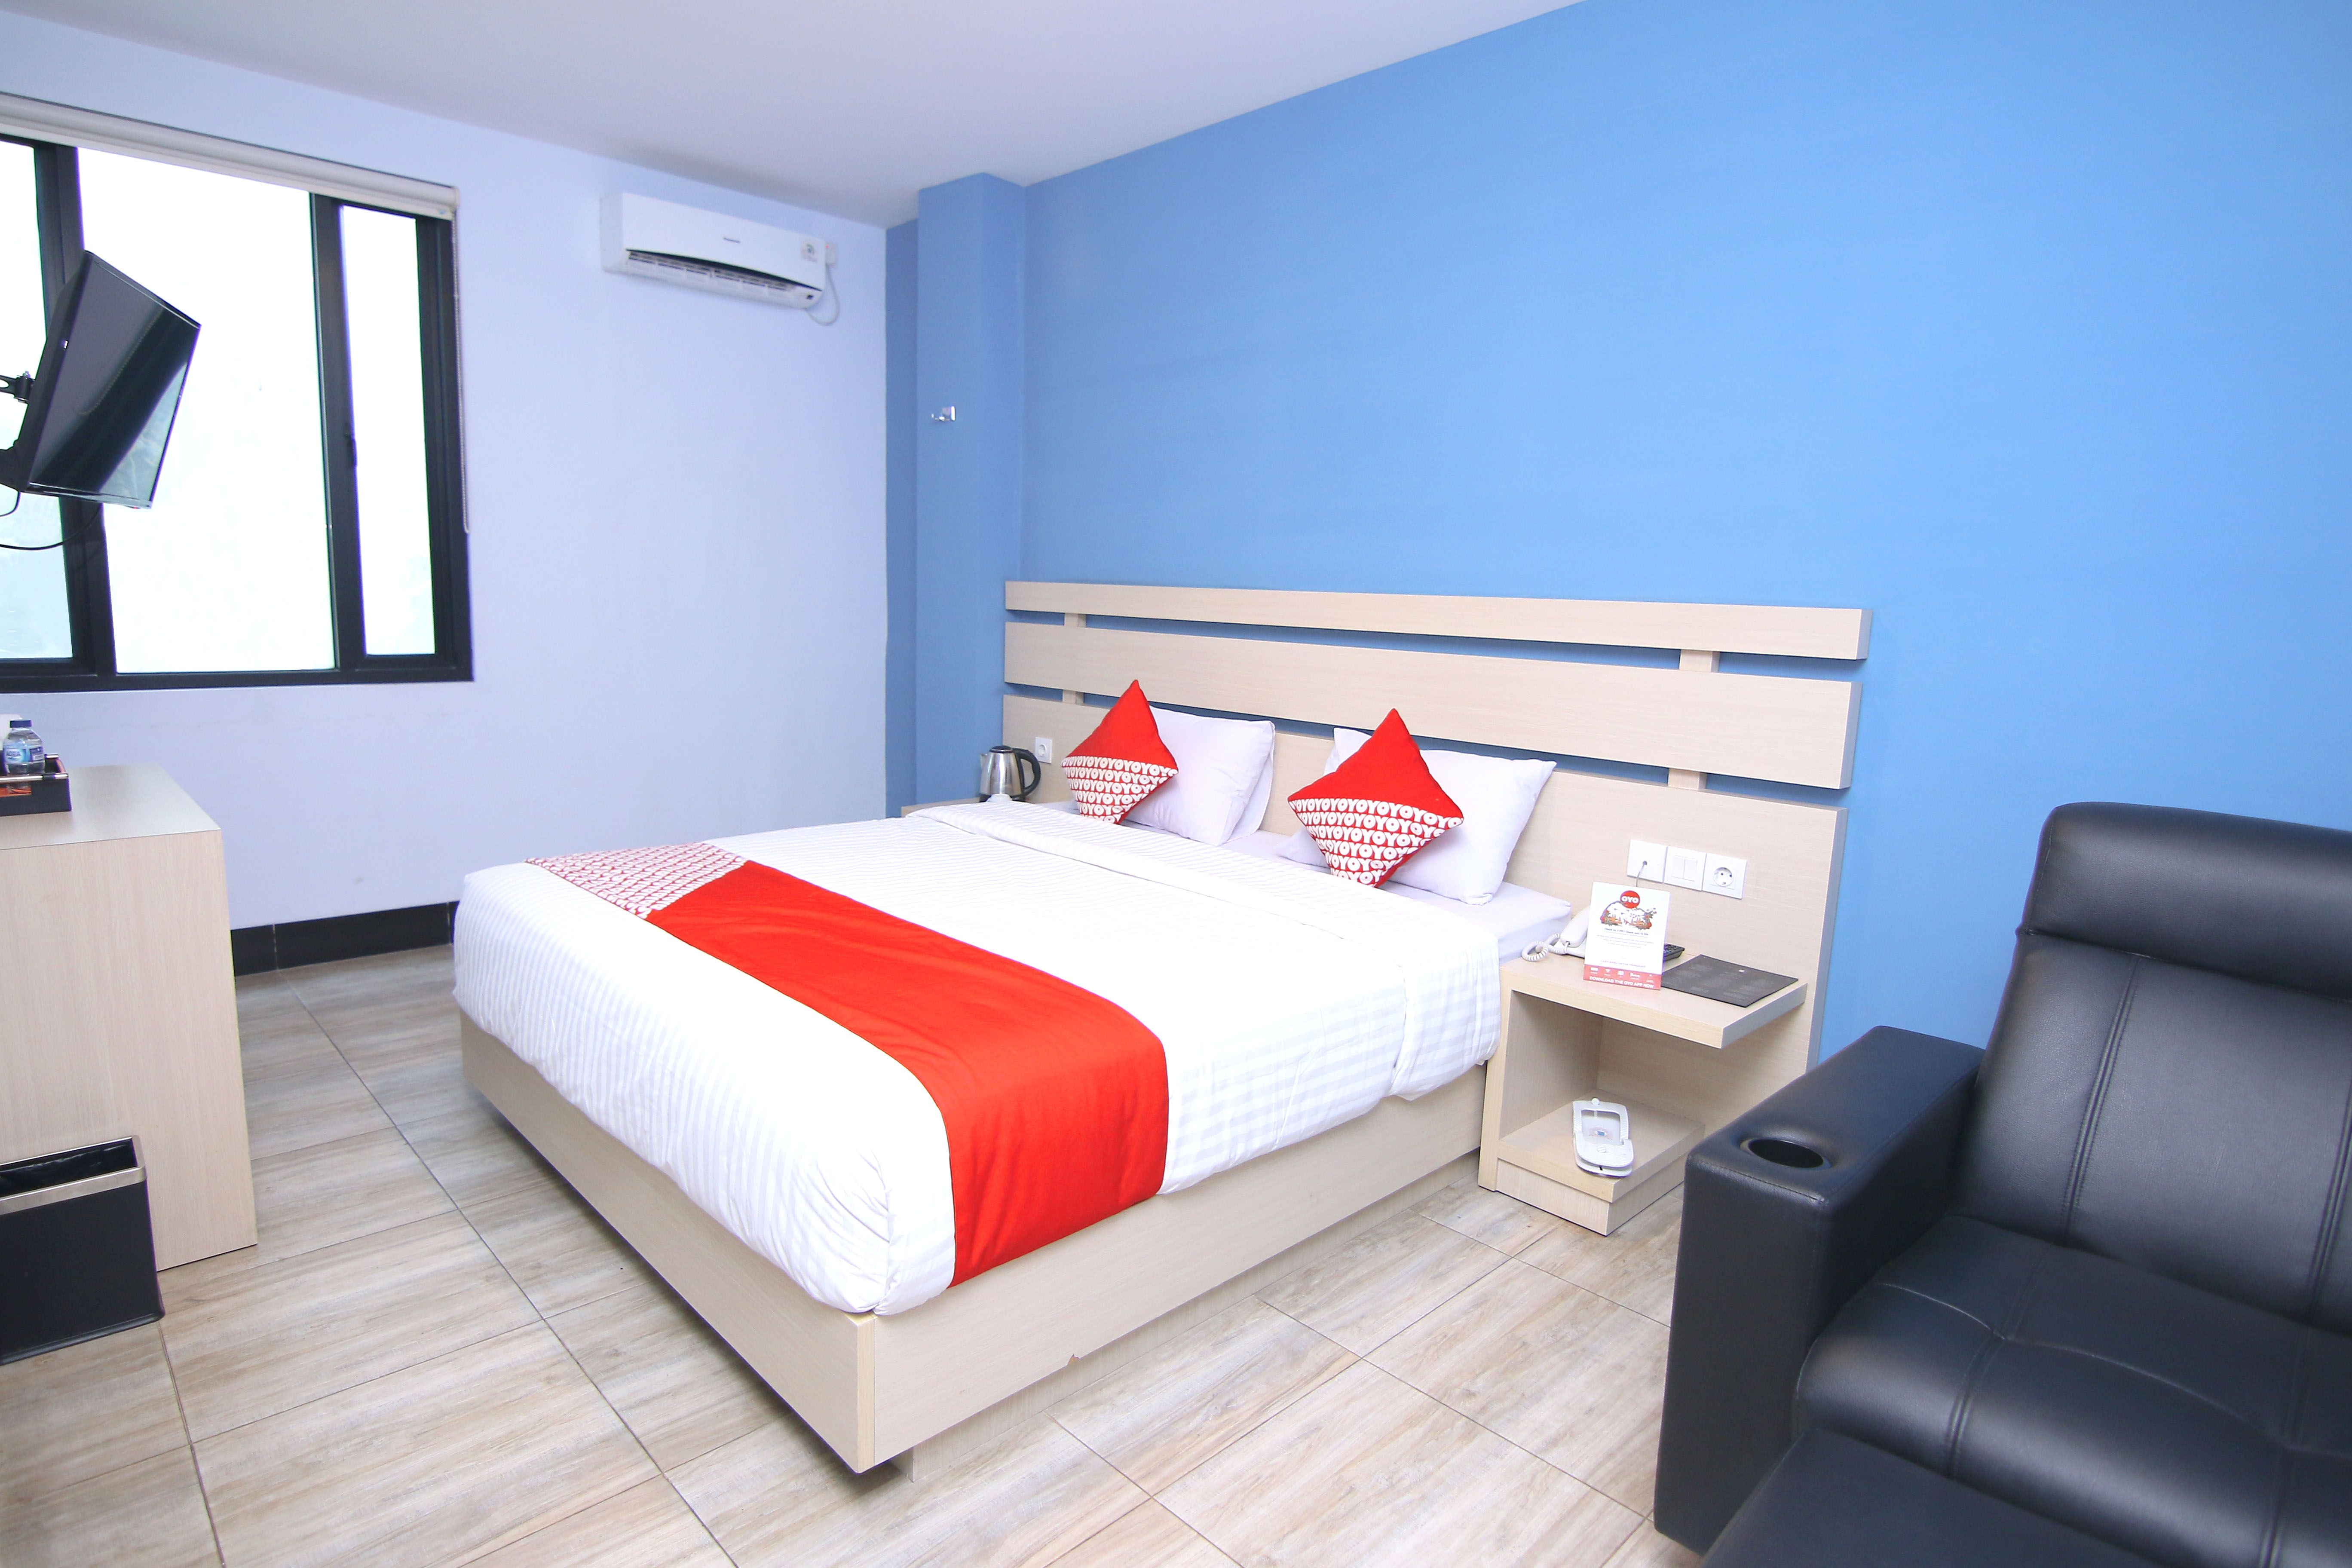 OYO 592 Budget Hotel by the Harbour, Padang